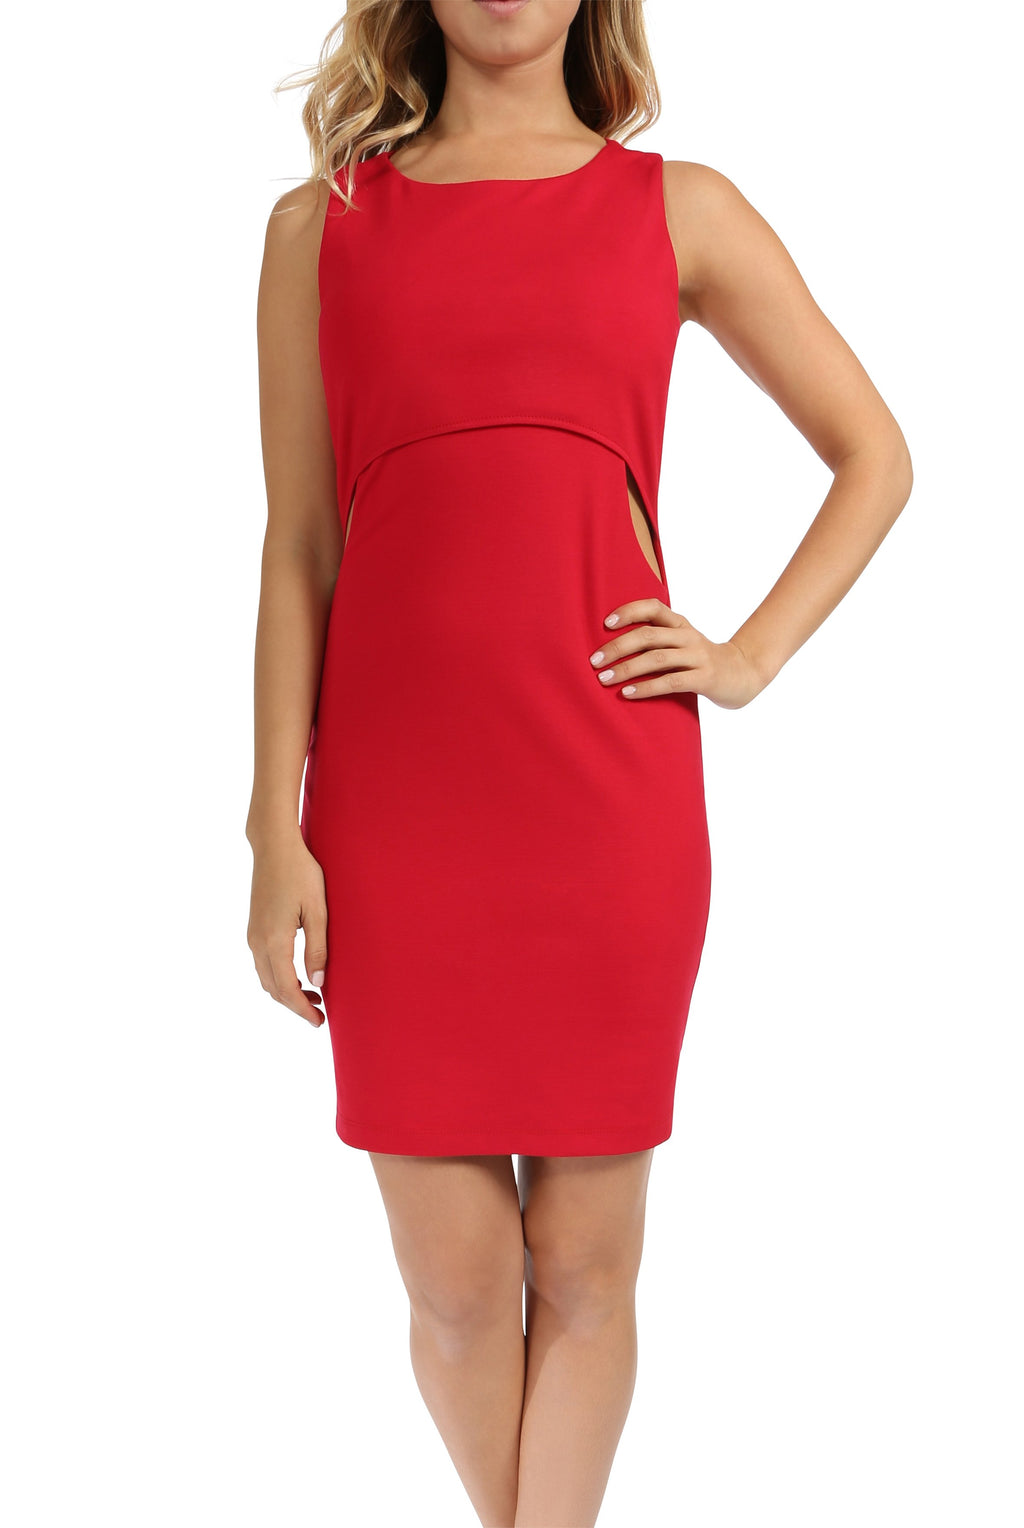 Teeze Me | Sleeveless Scoop Neck Popover Top Cutout Waist Fitted Dress | Red